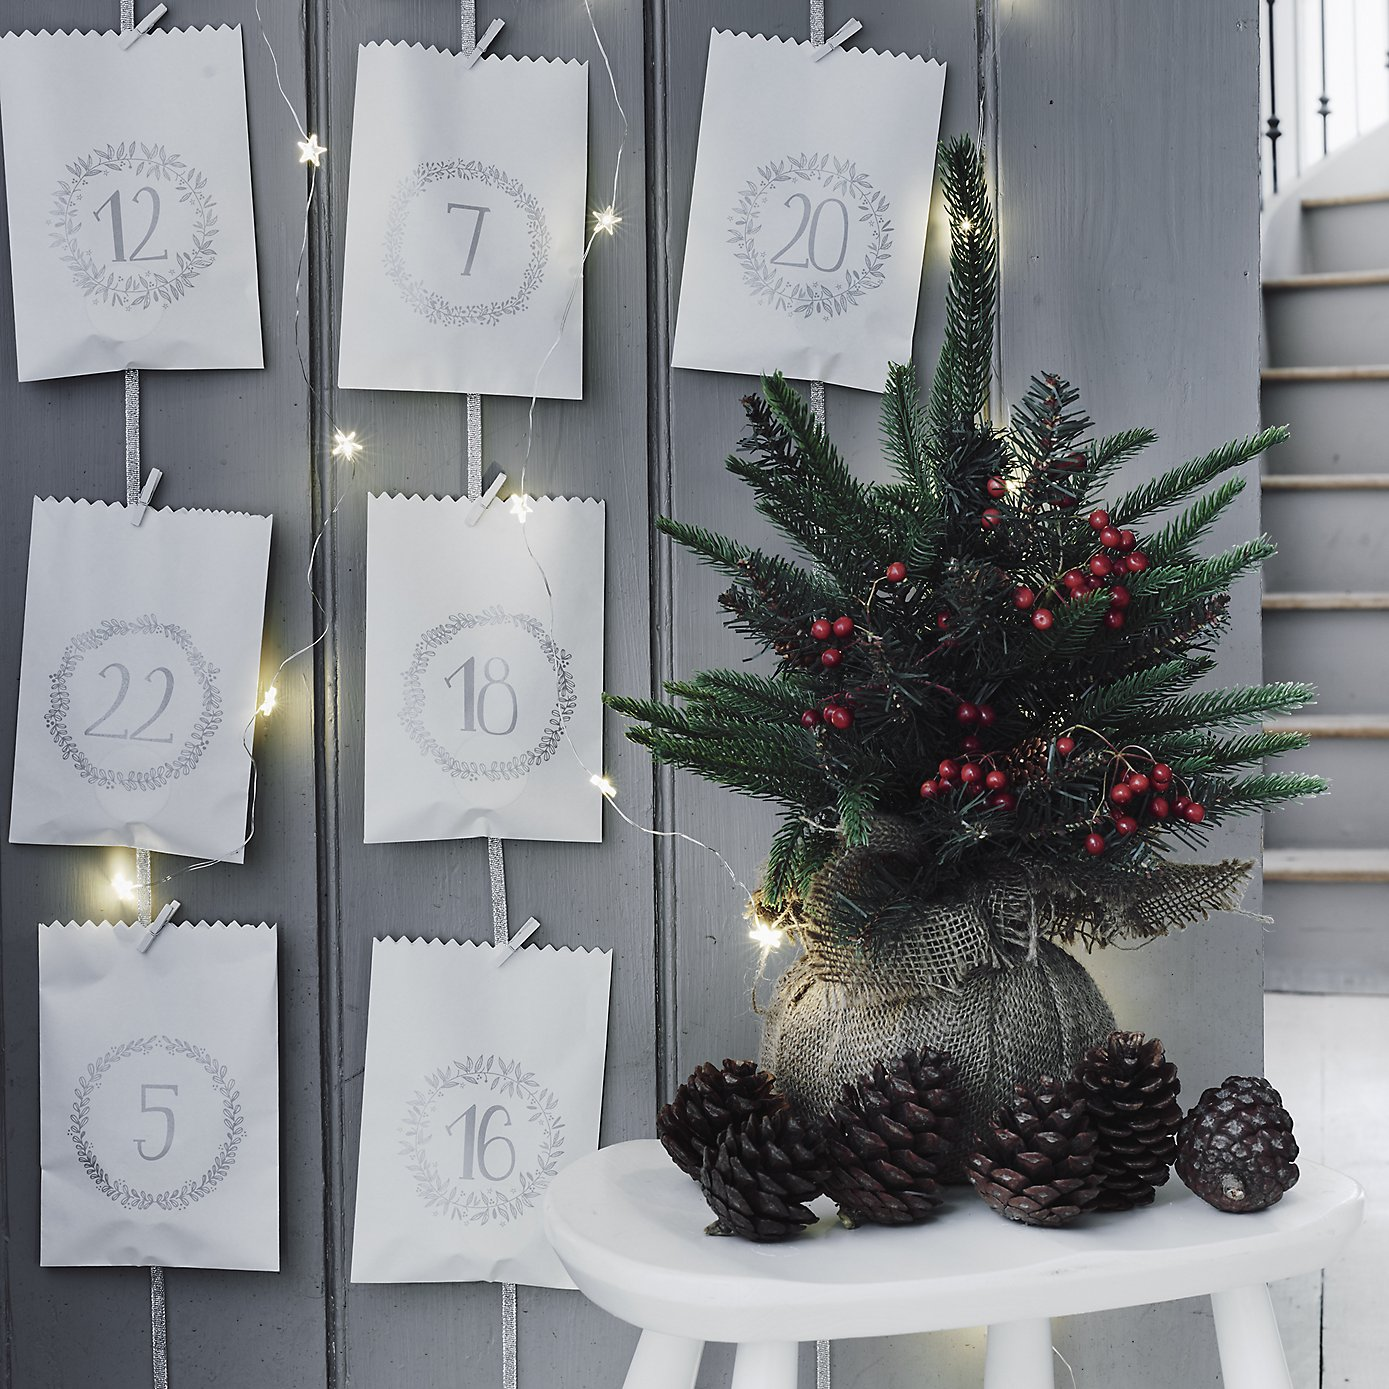 Advent Calendar Bags - The White Company - Humphrey Munson